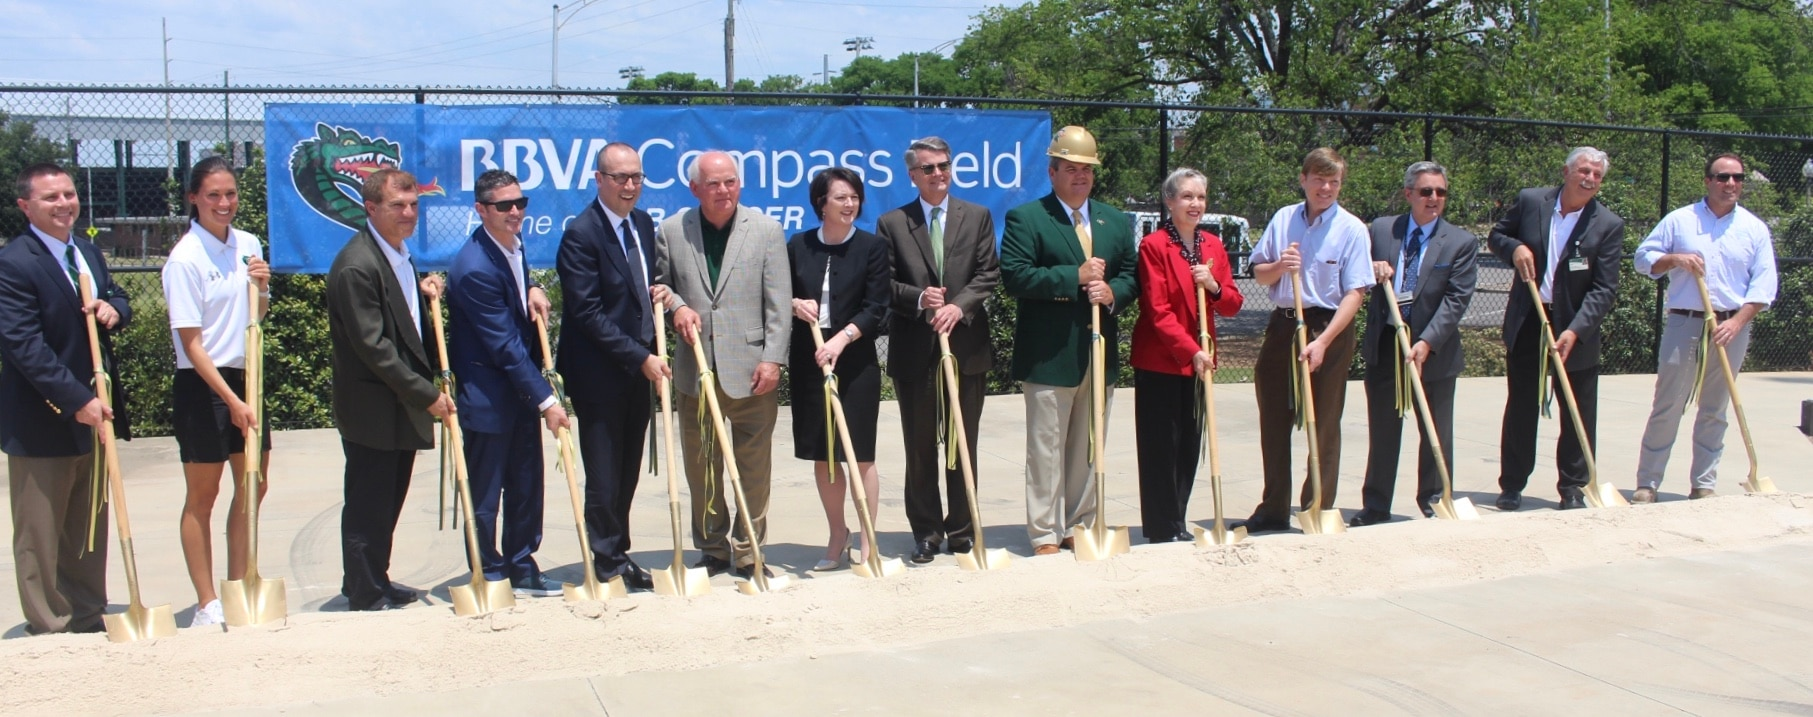 he UAB Department of Athletics, along with BBVA Compass and Birmingham Legion FC, celebrated the stadium expansion of BBVA Compass Field Wednesday on the campus of UAB.